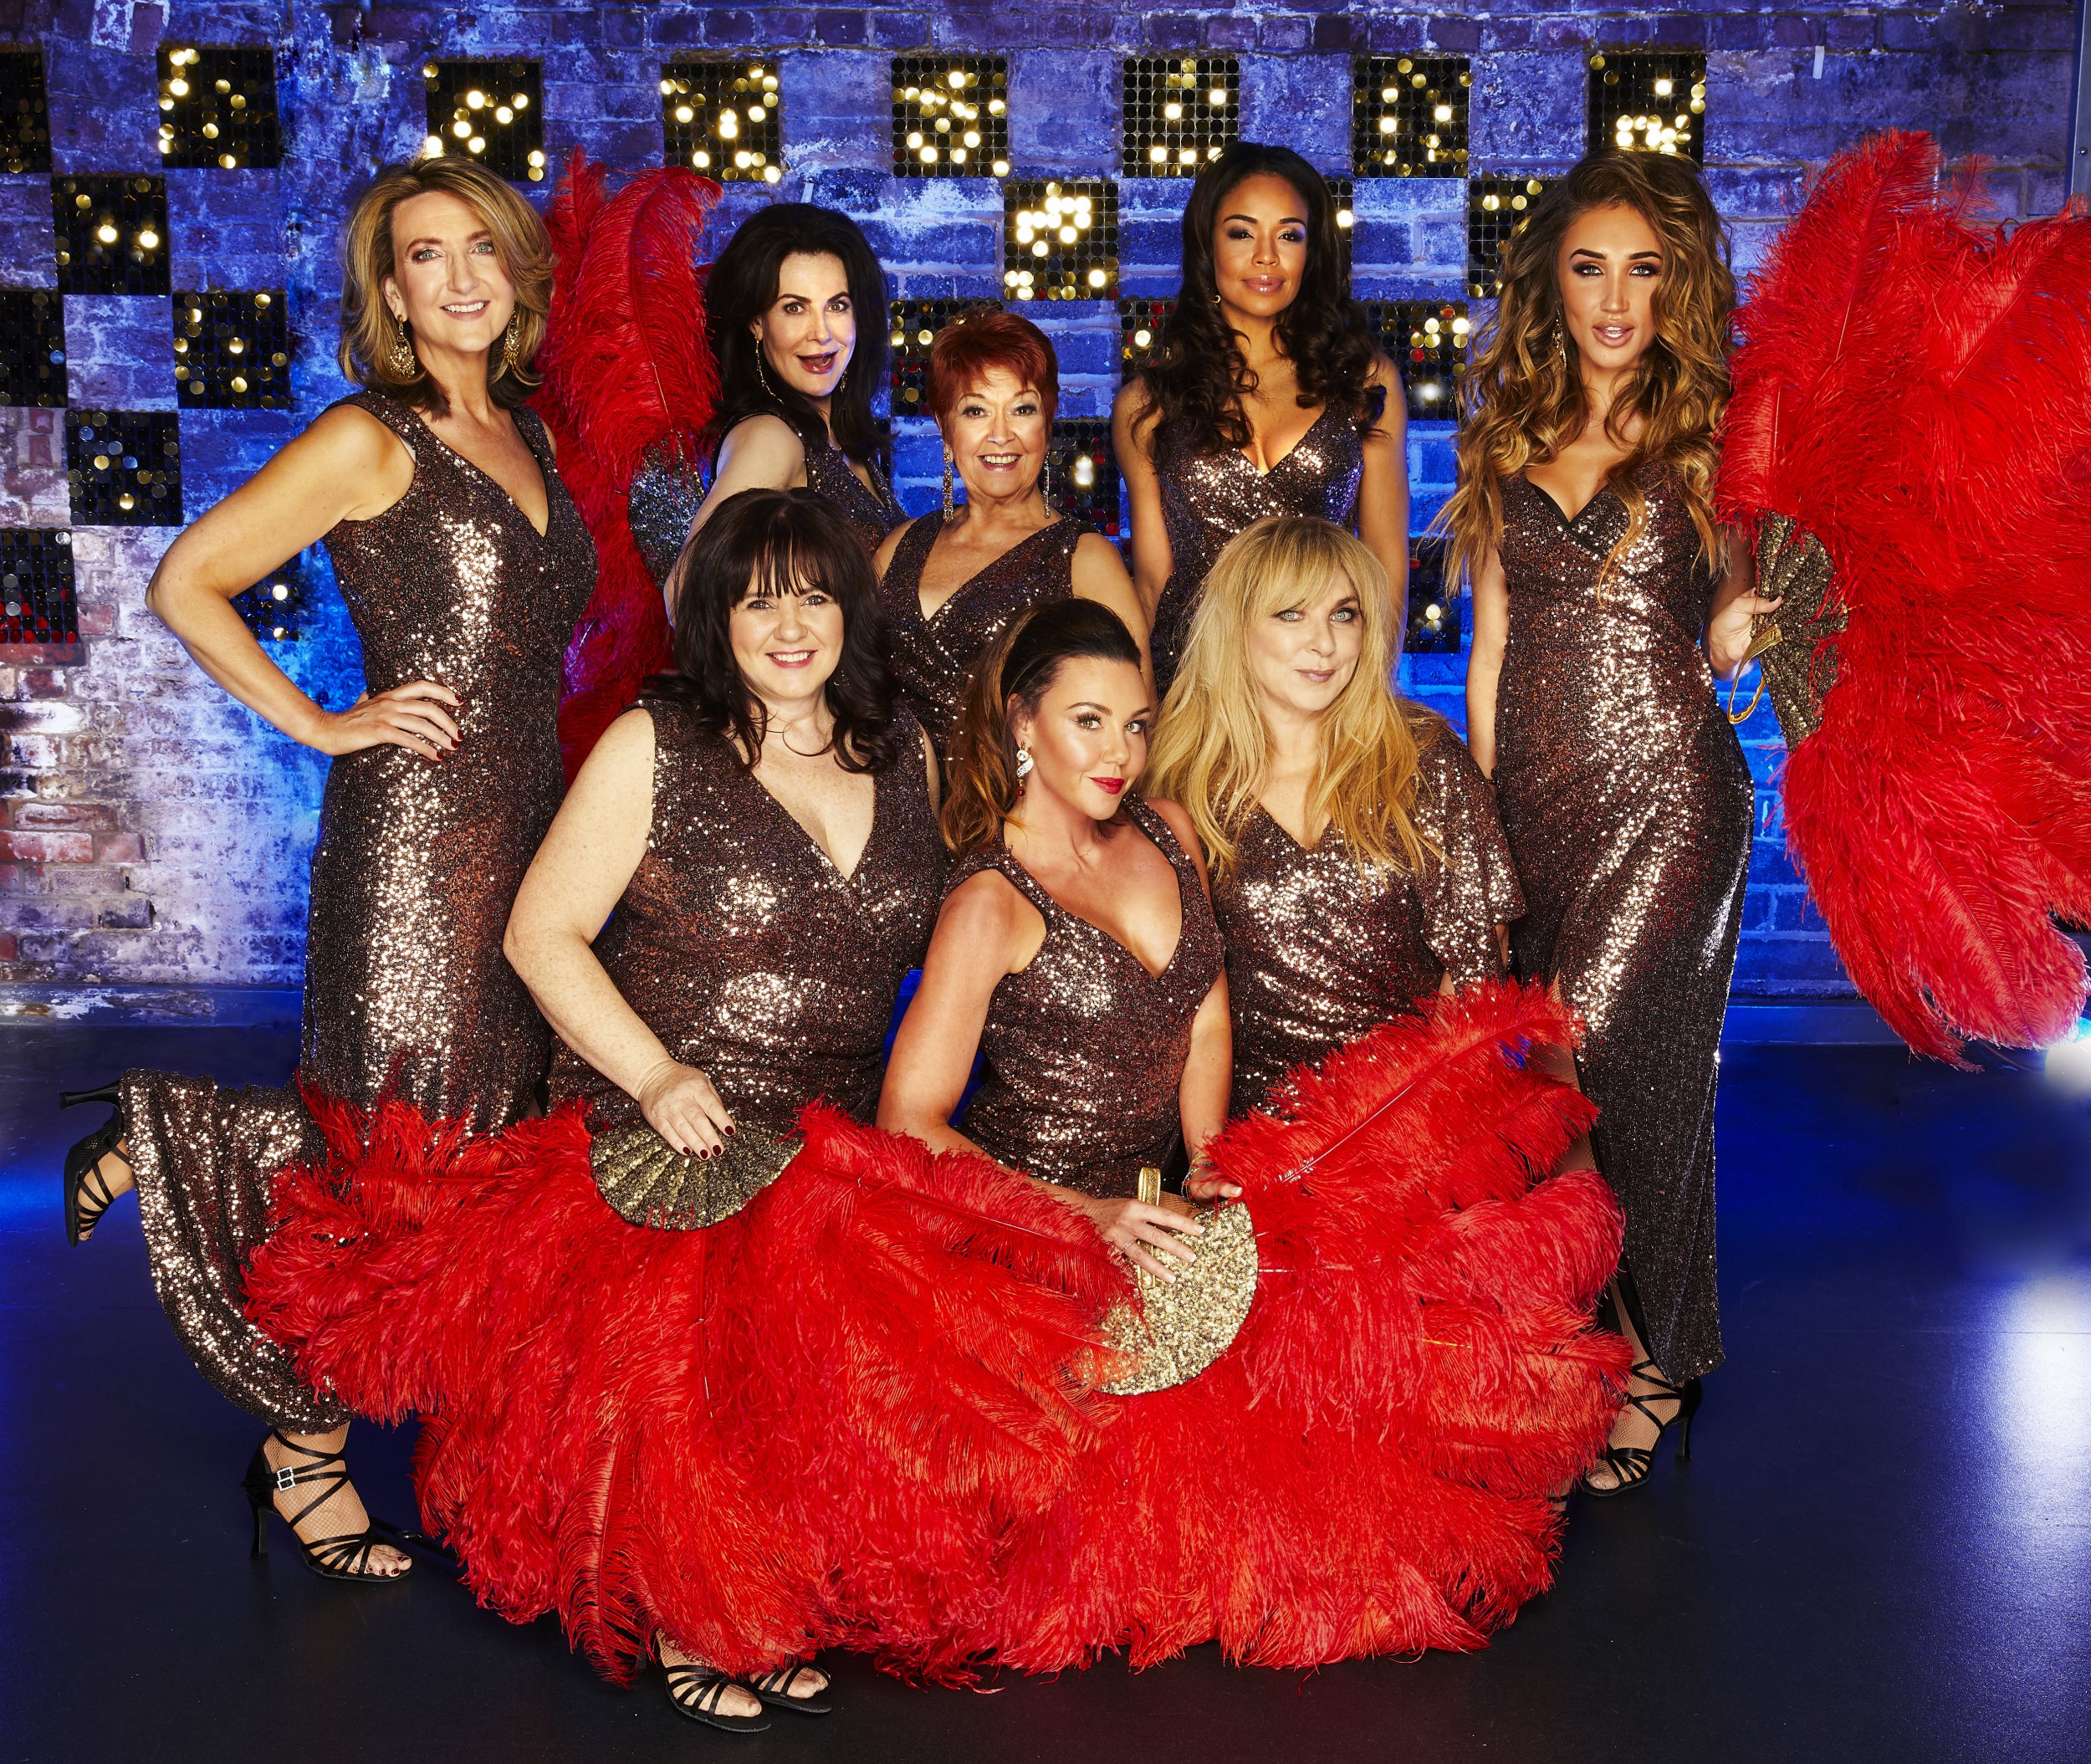 STRICTLY EMBARGOED PICTURE: FOR PUBLICATION FROM TUESDAY 20th MARCH 2018 From Spungold Productions THE REAL FULL MONTY : LADIES NIGHT Thursday 29th March 2018 on ITV Pictured: (l-r, backrow) Victoria Derbyshire, Sally Dexter, Ruth Madoc, Sarah-Jane Crawford and Megan McKenna. (l-r front row) Colleen Nolan, Michelle Heaton and Helen Lederer Hot on the heels of the return of ?The Real Full Monty?, eight female celebrities are gearing up for the performance of their lives in ?The Real Full Monty: Ladies? Night?, determined to show the boys how it?s done and raise awareness of breast cancer. This ?sister? commission to The Real Full Monty will see two unforgettable nights running on ITV. The men?s Real Full Monty might be bigger and better than ever before, but the eight brave ladies ready to take them on are TV presenter Coleen Nolan, broadcaster Victoria Derbyshire, Emmerdale actress Sally Dexter, reality TV star Megan McKenna, former Liberty X singer Michelle Heaton, actress Helen Lederer, TV legend Ruth Madoc and presenter Sarah-Jane Crawford - for all of whom the issue of breast cancer awareness is close to their hearts. The ladies? mission is to pull together to create a show-stopping performance that will wow the audience as they battle to overcome their nerves and inhibitions, learn to love their bodies and dare to bare for a good cause. Along the way they visit the legendary Moulin Rouge in Paris to get inspiration for the show. ? ITV Photographer: Nicky Johnston This photograph is ? ITV and can only be reproduced for editorial purposes directly in connection with the programme THE REAL FULL MONTY : LADIES NIGHT or ITV. Once made available by the ITV Picture Desk, this photograph can be reproduced once only up until the Transmission date and no reproduction fee will be charged. Any subsequent usage may incur a fee. This photograph must not be syndicated to any other publication or website, or permanently archived, without the express written permission of ITV Picture Desk. Full Terms and conditions are available on the website www.itvpictures.com